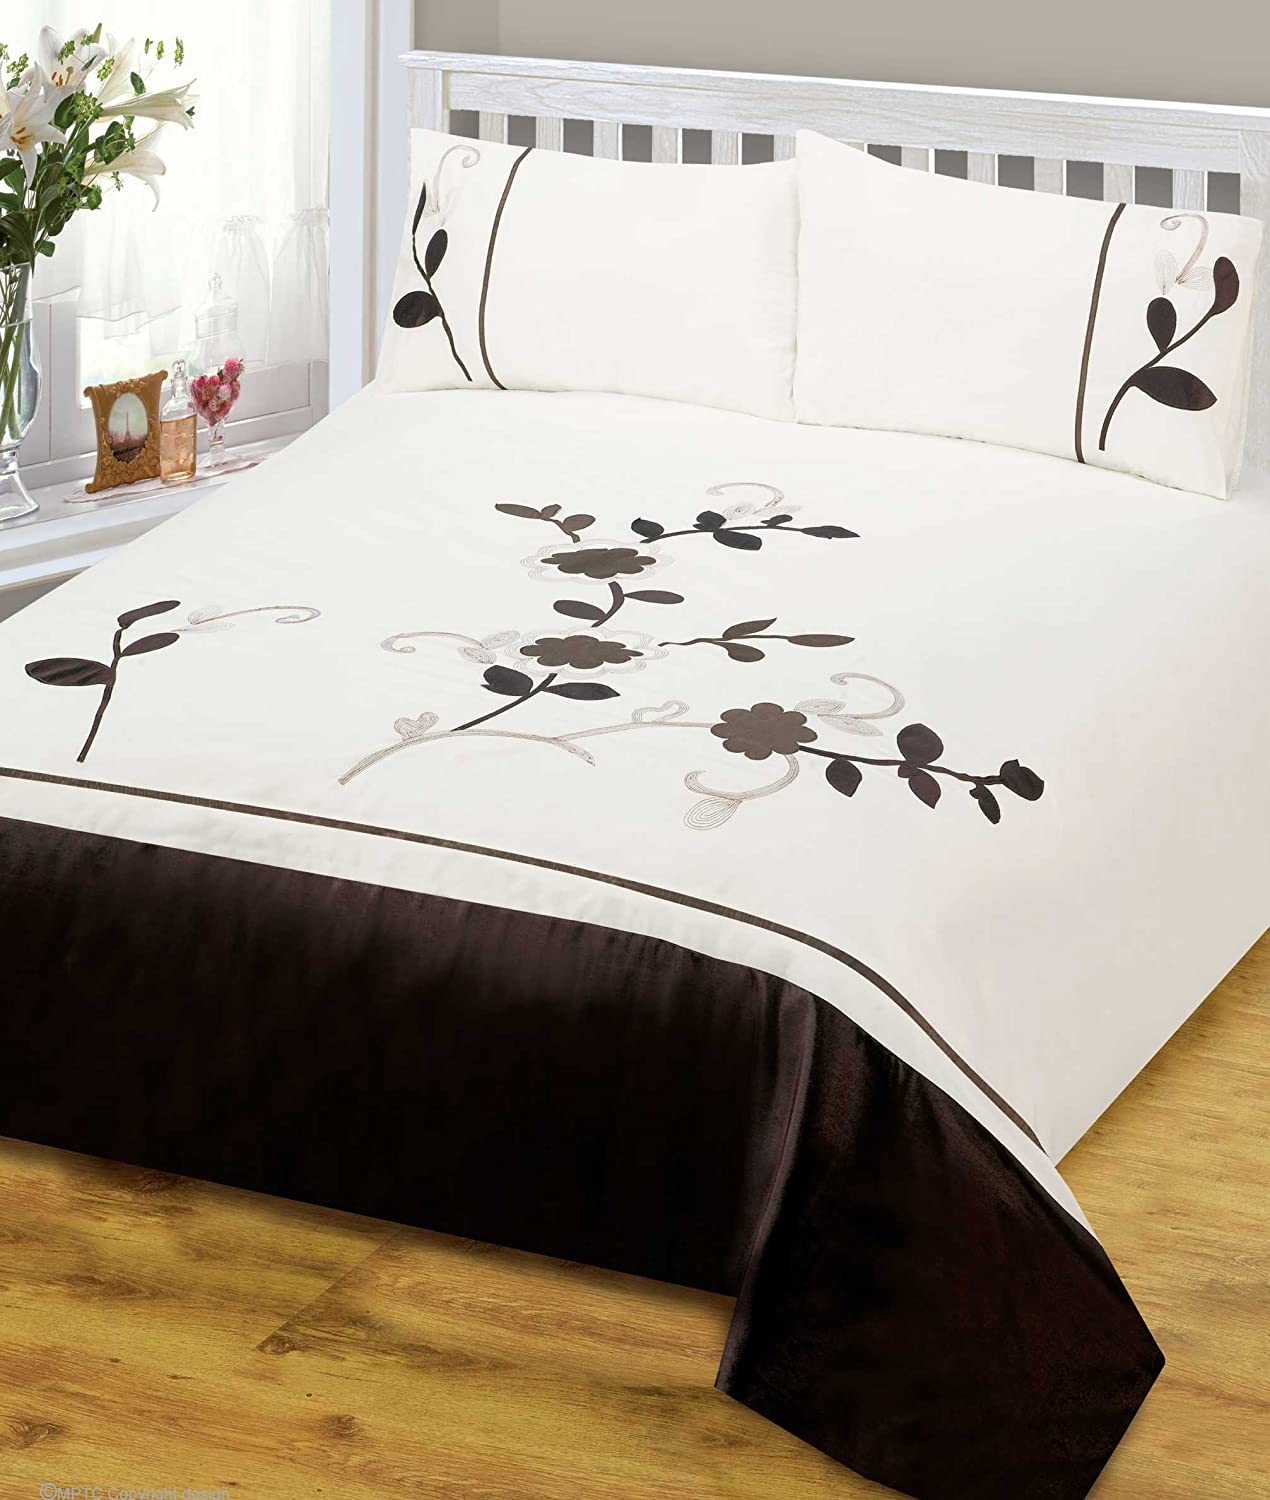 Designer Luxury Single Bed Tulisa Chocolate Brown Floral Duvet Cover Bedding Set- Tulisa Ashley Mills 5029497141169